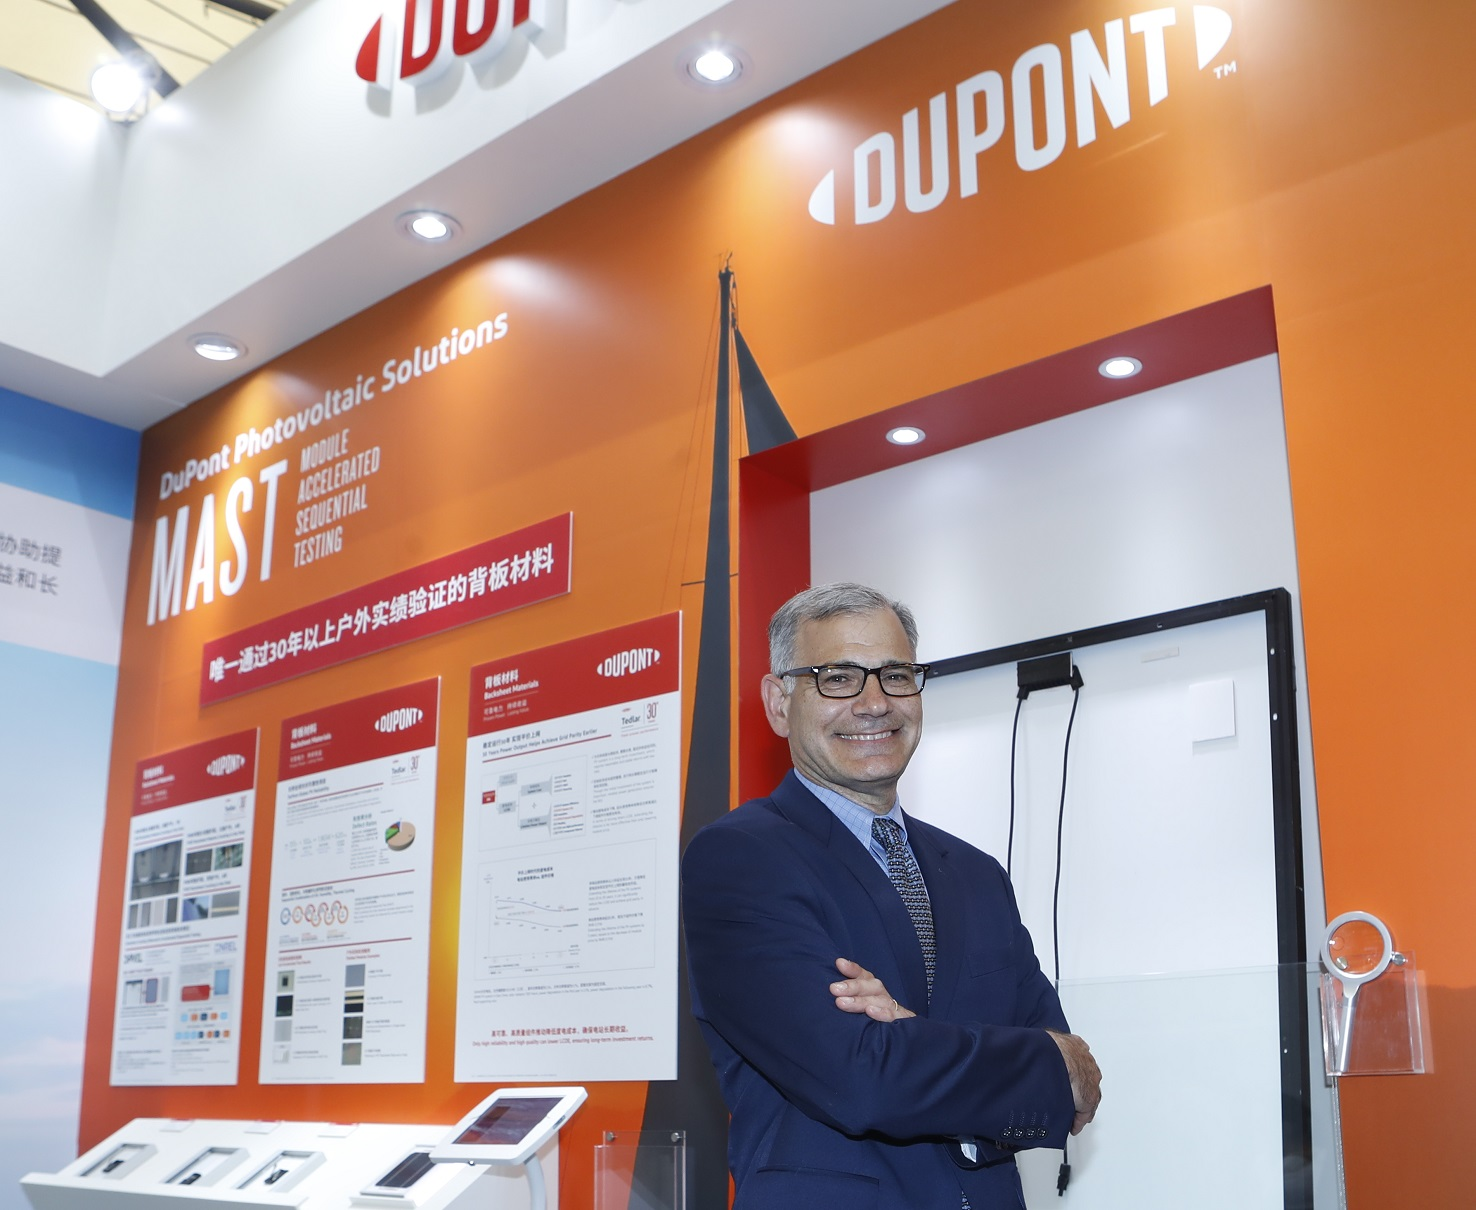 Ethan Simon, CTO of DuPont Photovoltaic and Advanced Materials. Source: DuPont.